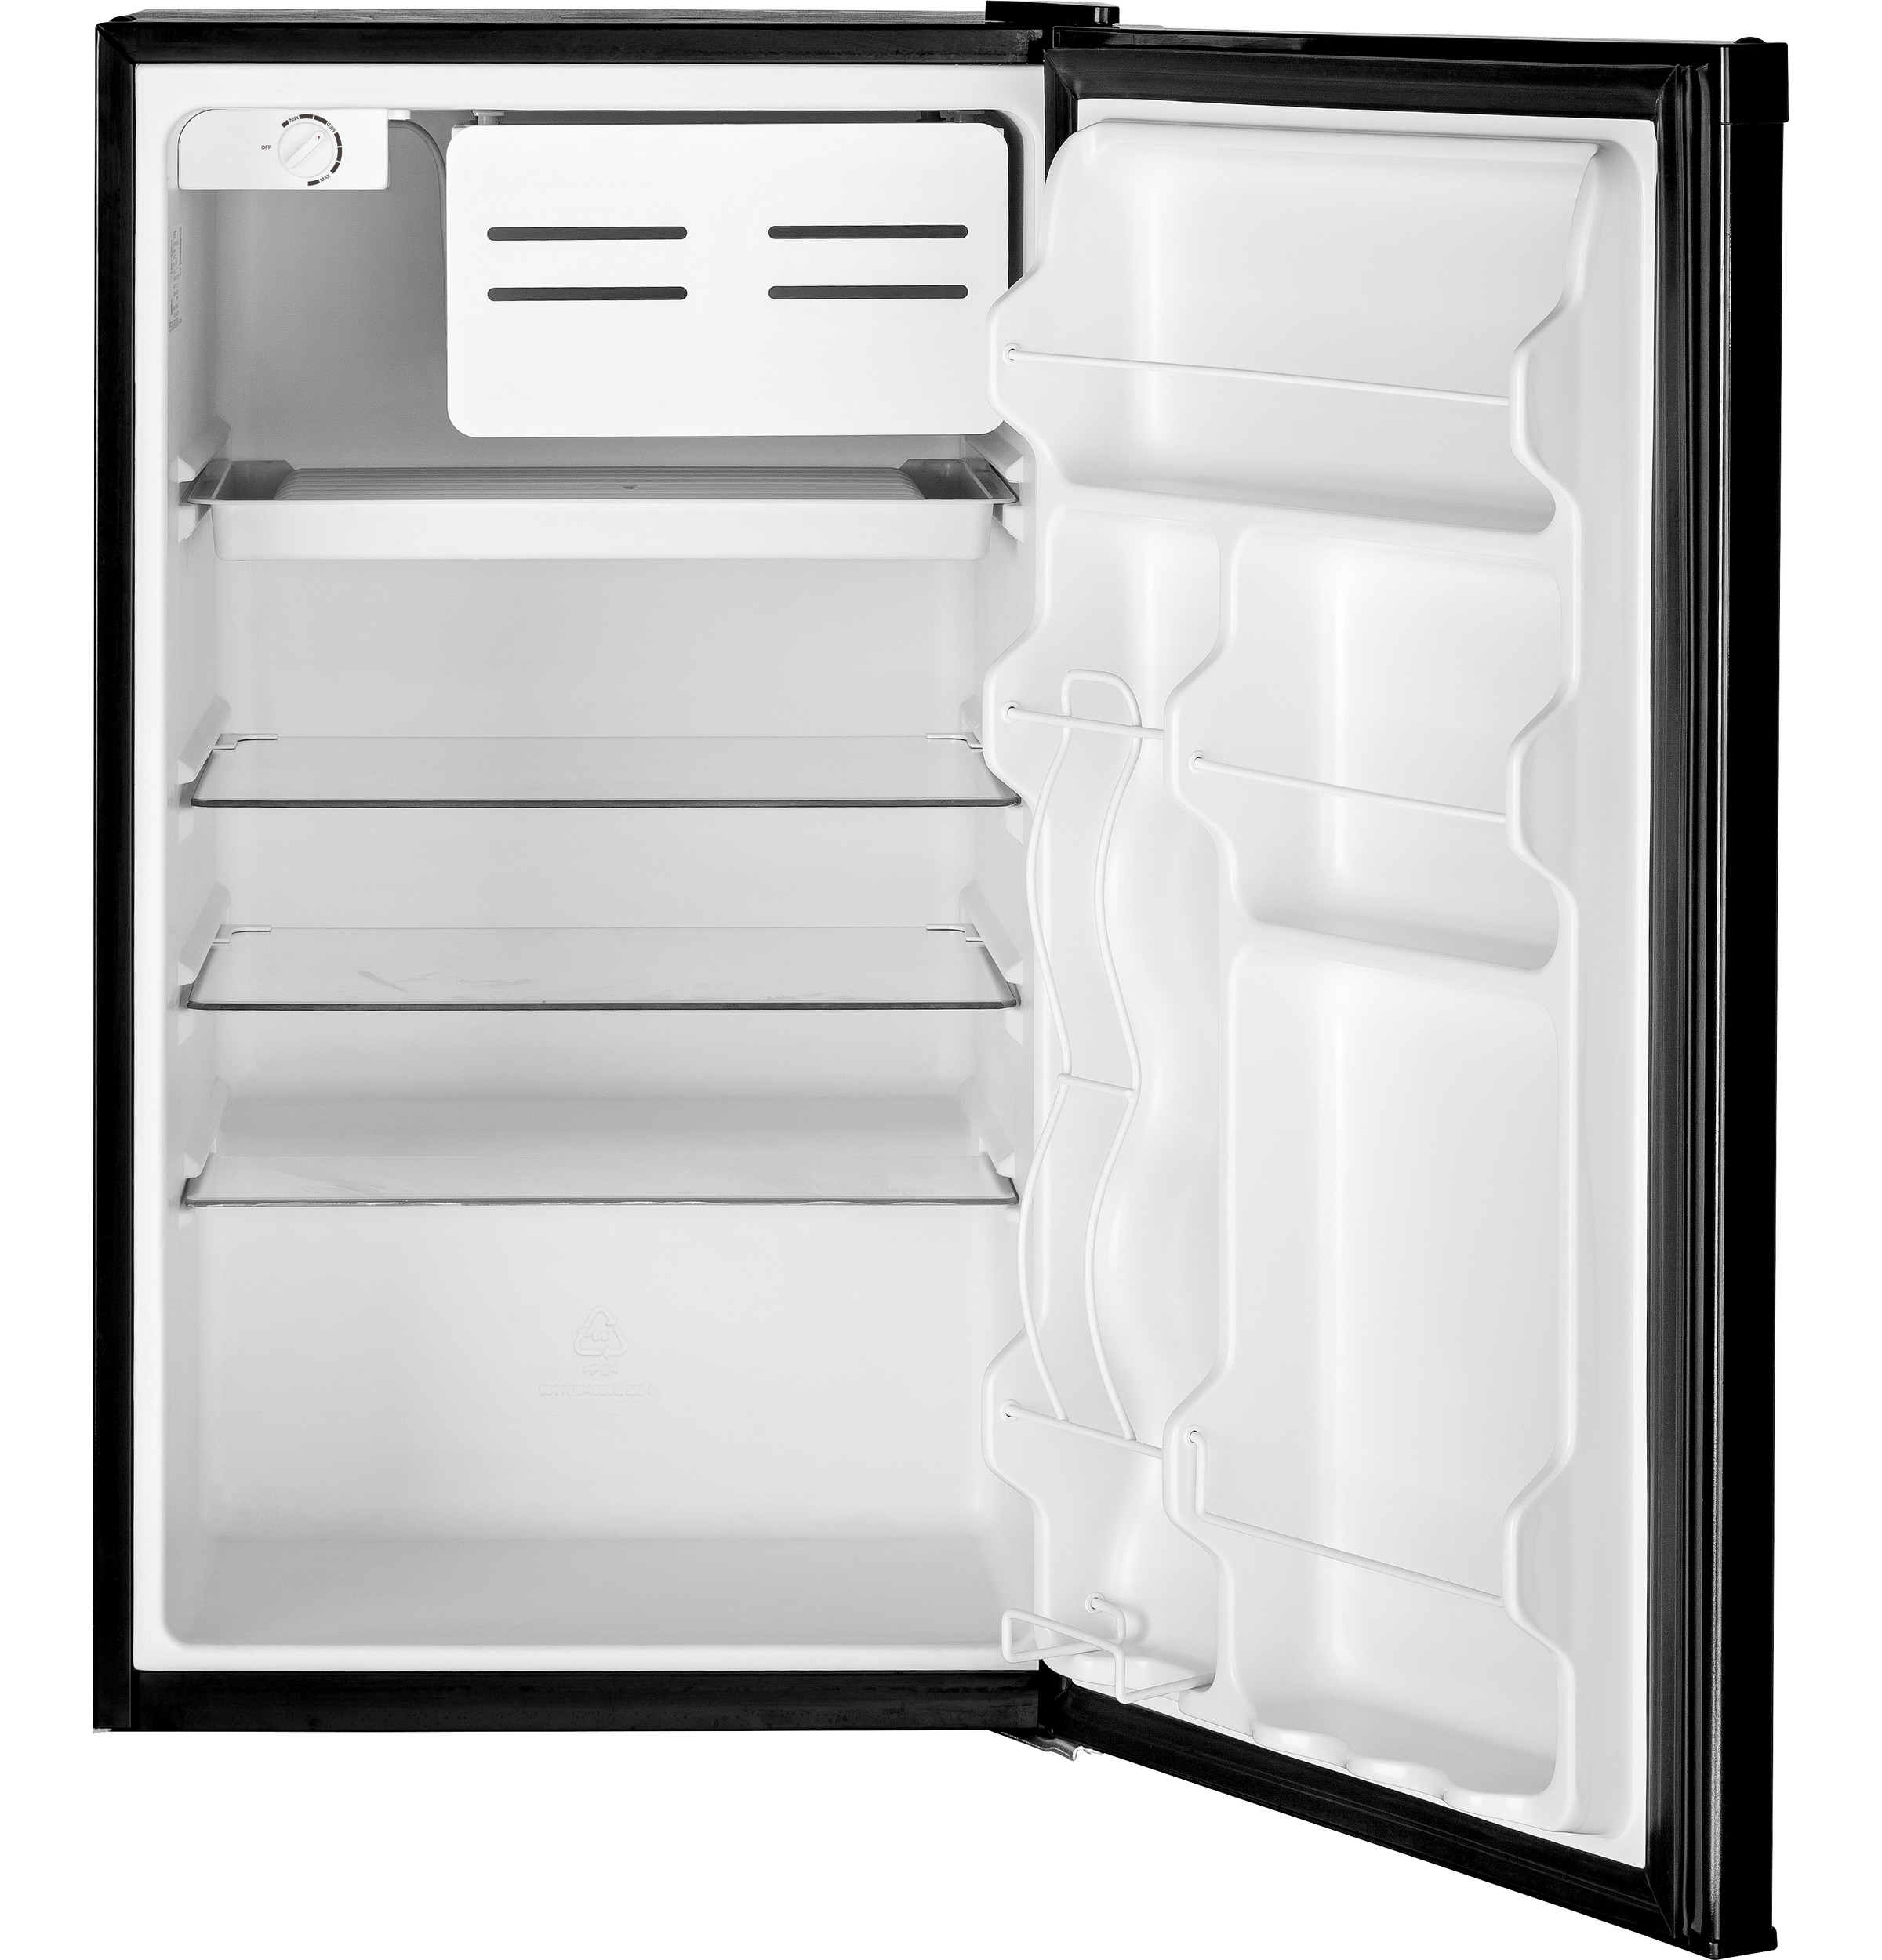 Model: GME04GGKBB | GE GE® Compact Refrigerator